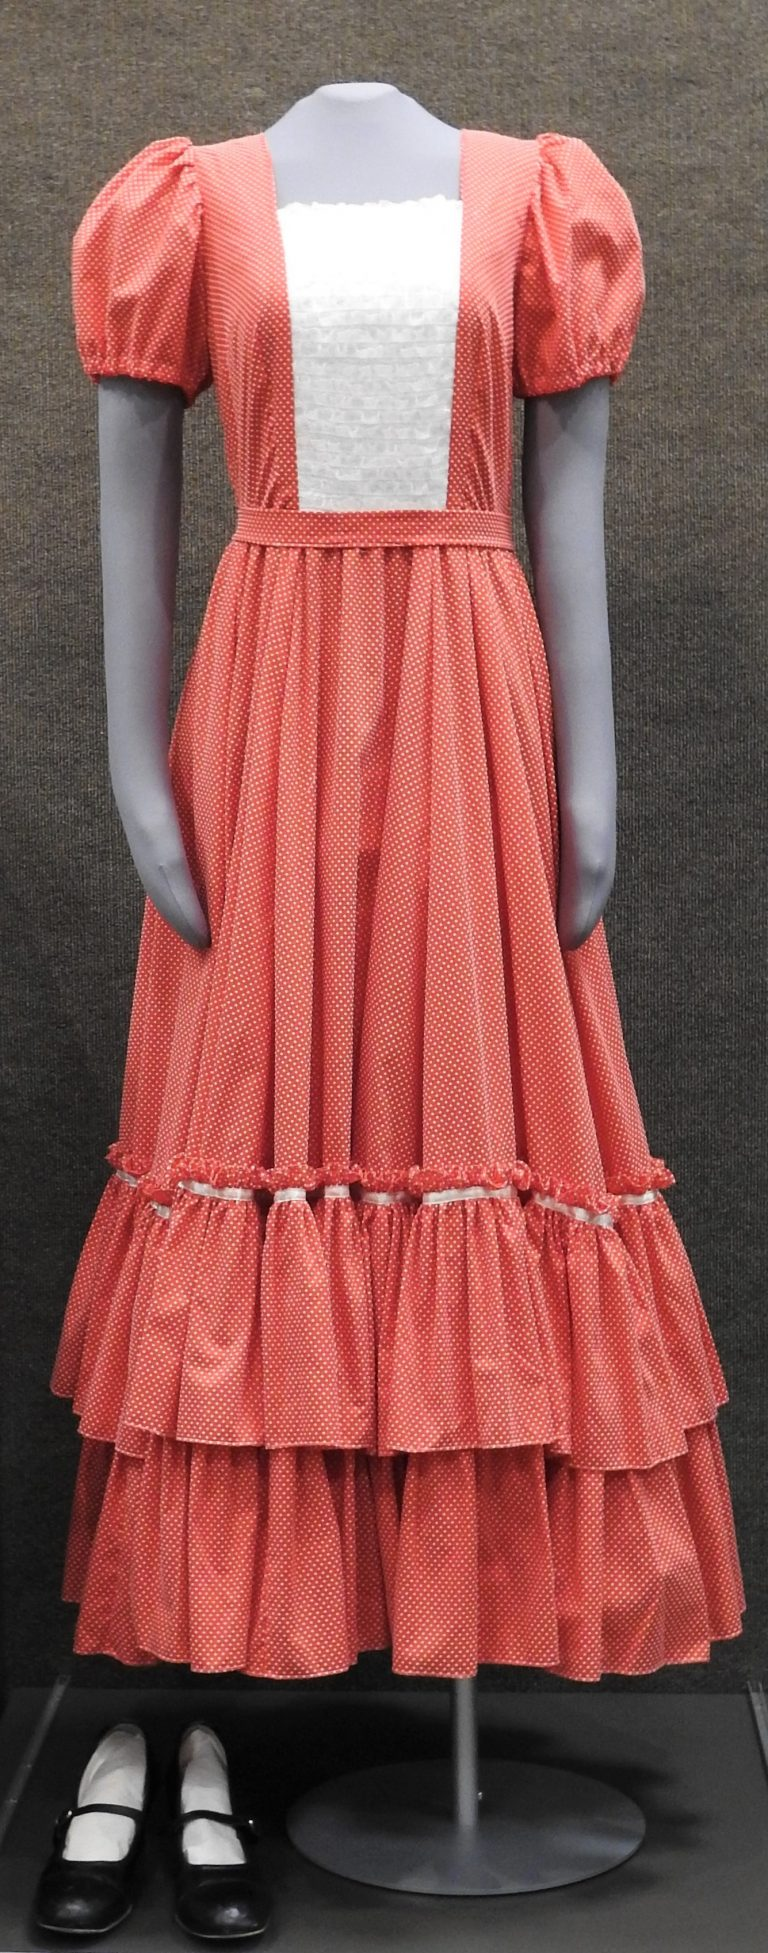 """""""Fun Finders"""" Square Dancing Dress & Shoes, 1975-1992. Generously donated by Dean and Peg Edwards, 2000.93.1,2."""